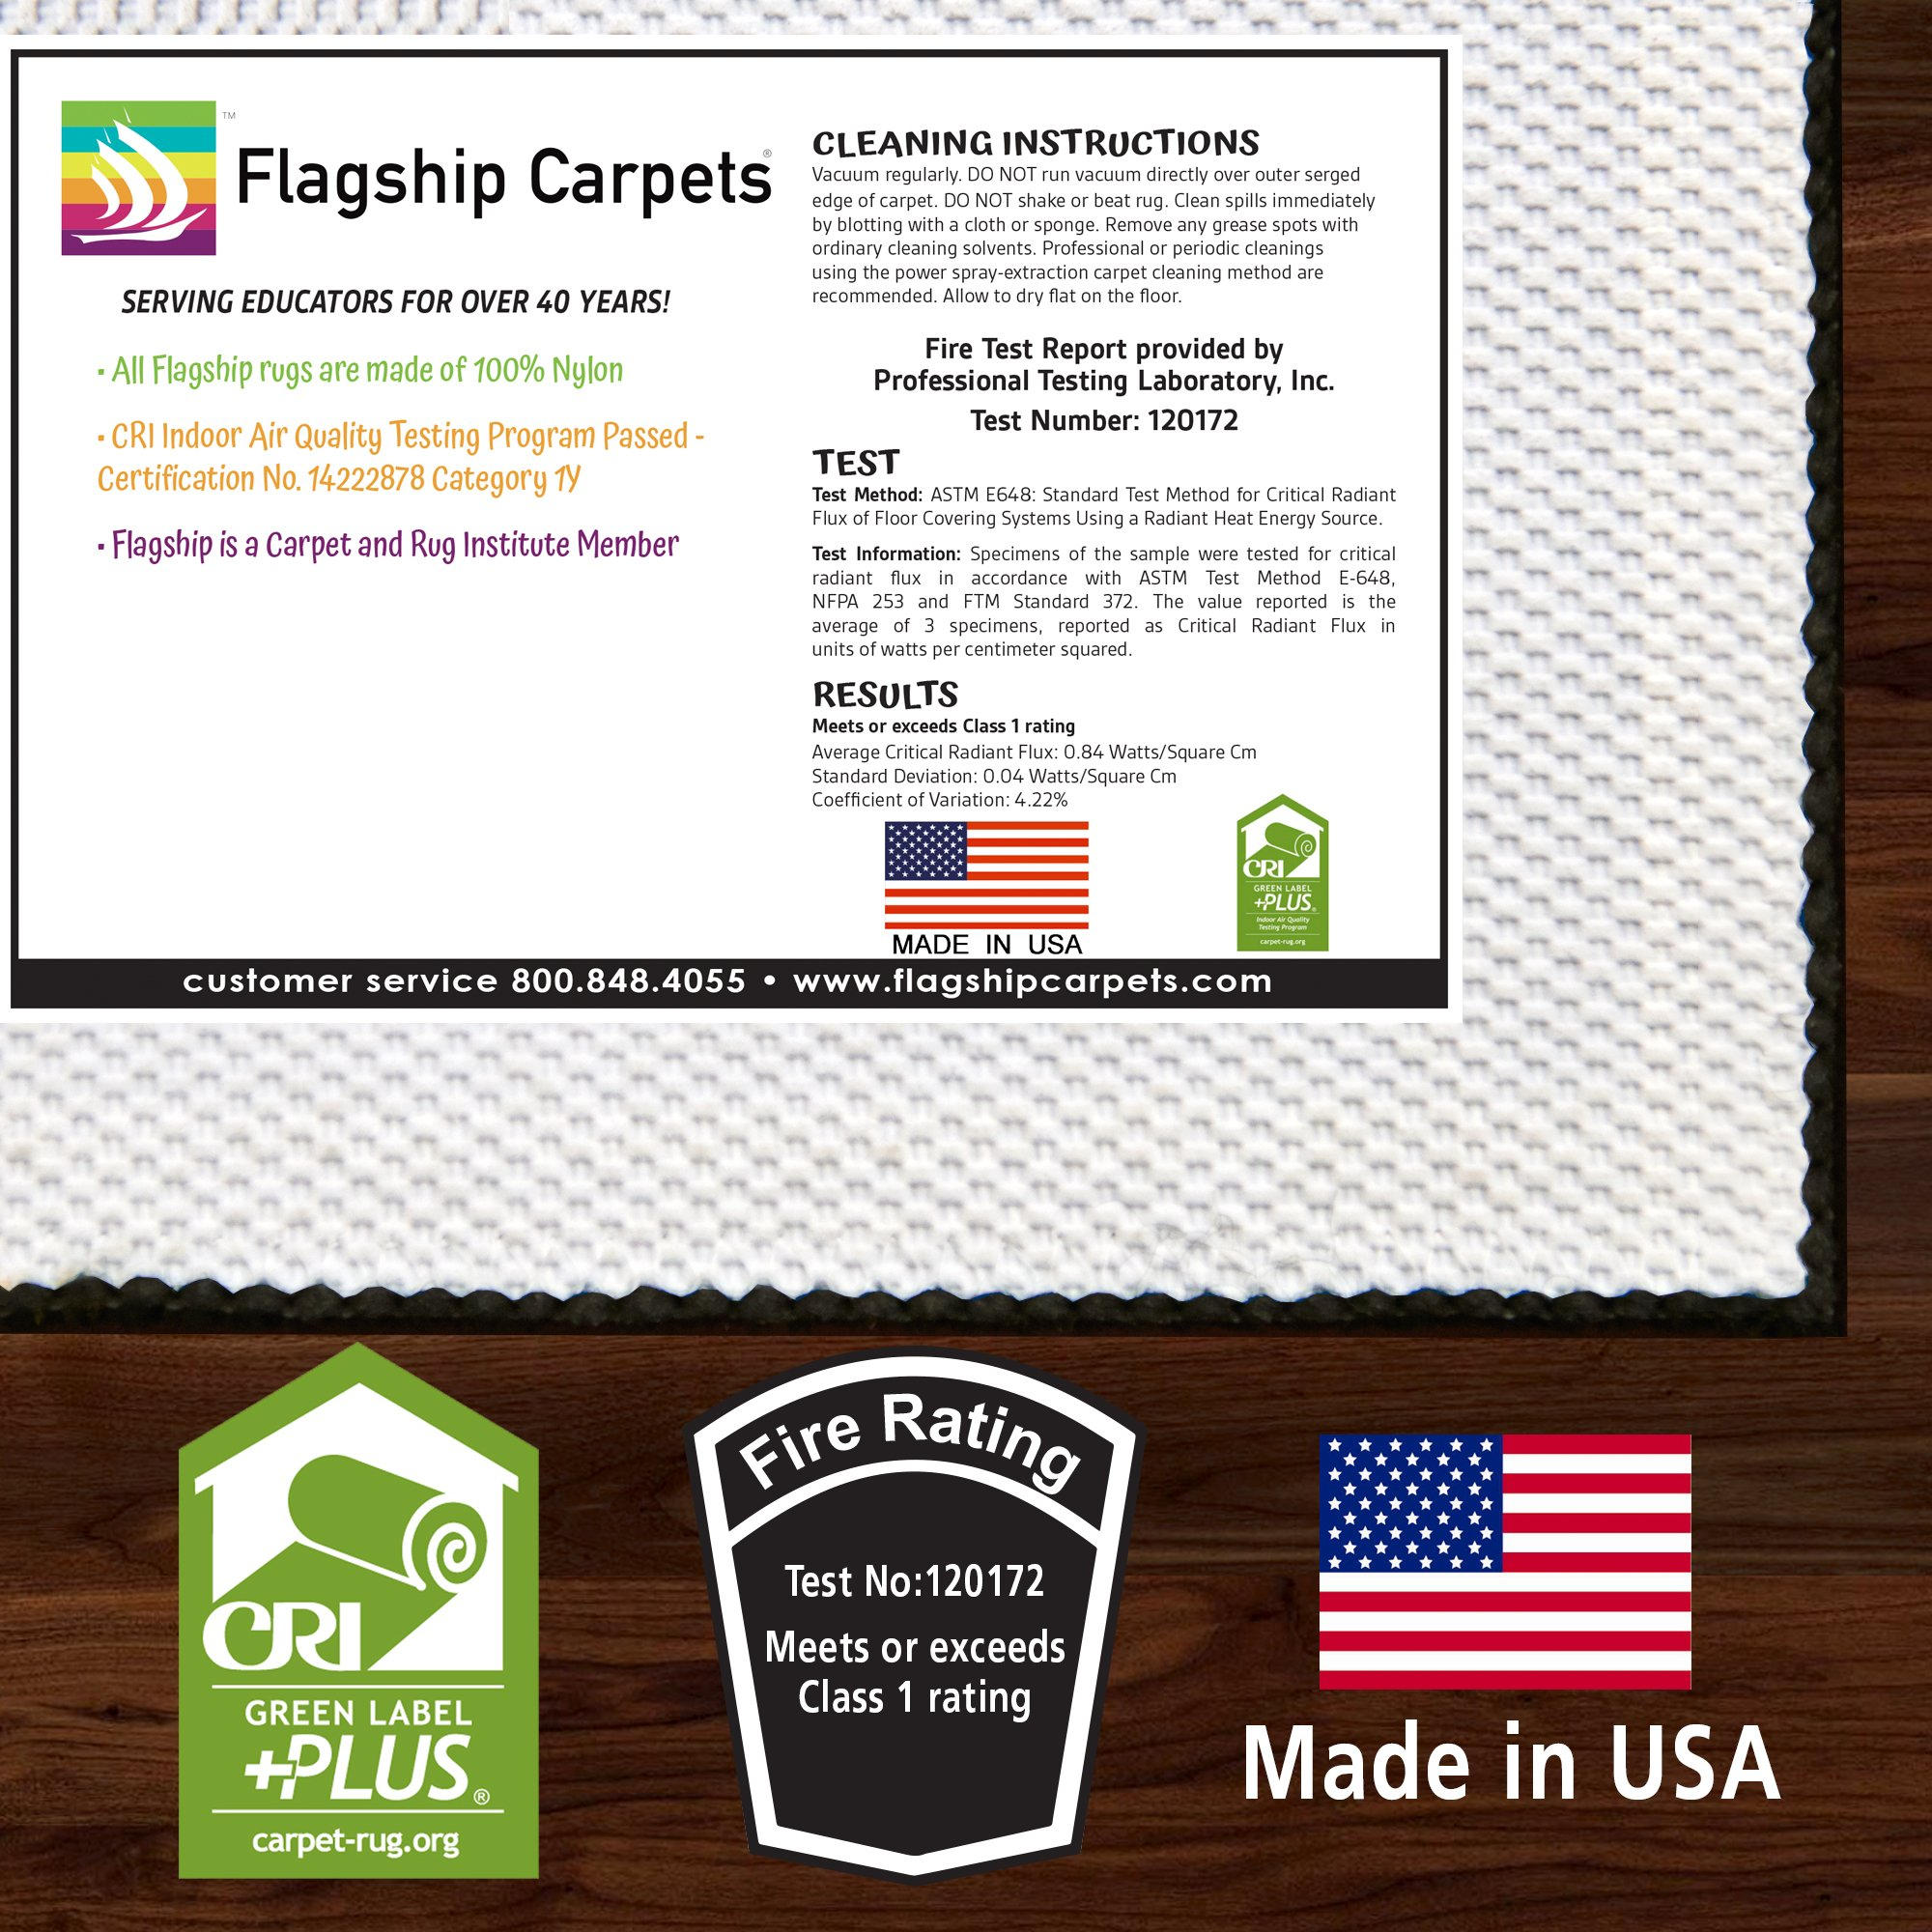 Flagship Carpets CE190-28W Fun at School Rug, Explore Health and Wellness As Well As STEAM Subjects, Children's Classroom Educational Carpet, 5' x 8', 60'' Length, 96'' Width, Multi-Color by Flagship Carpets (Image #4)